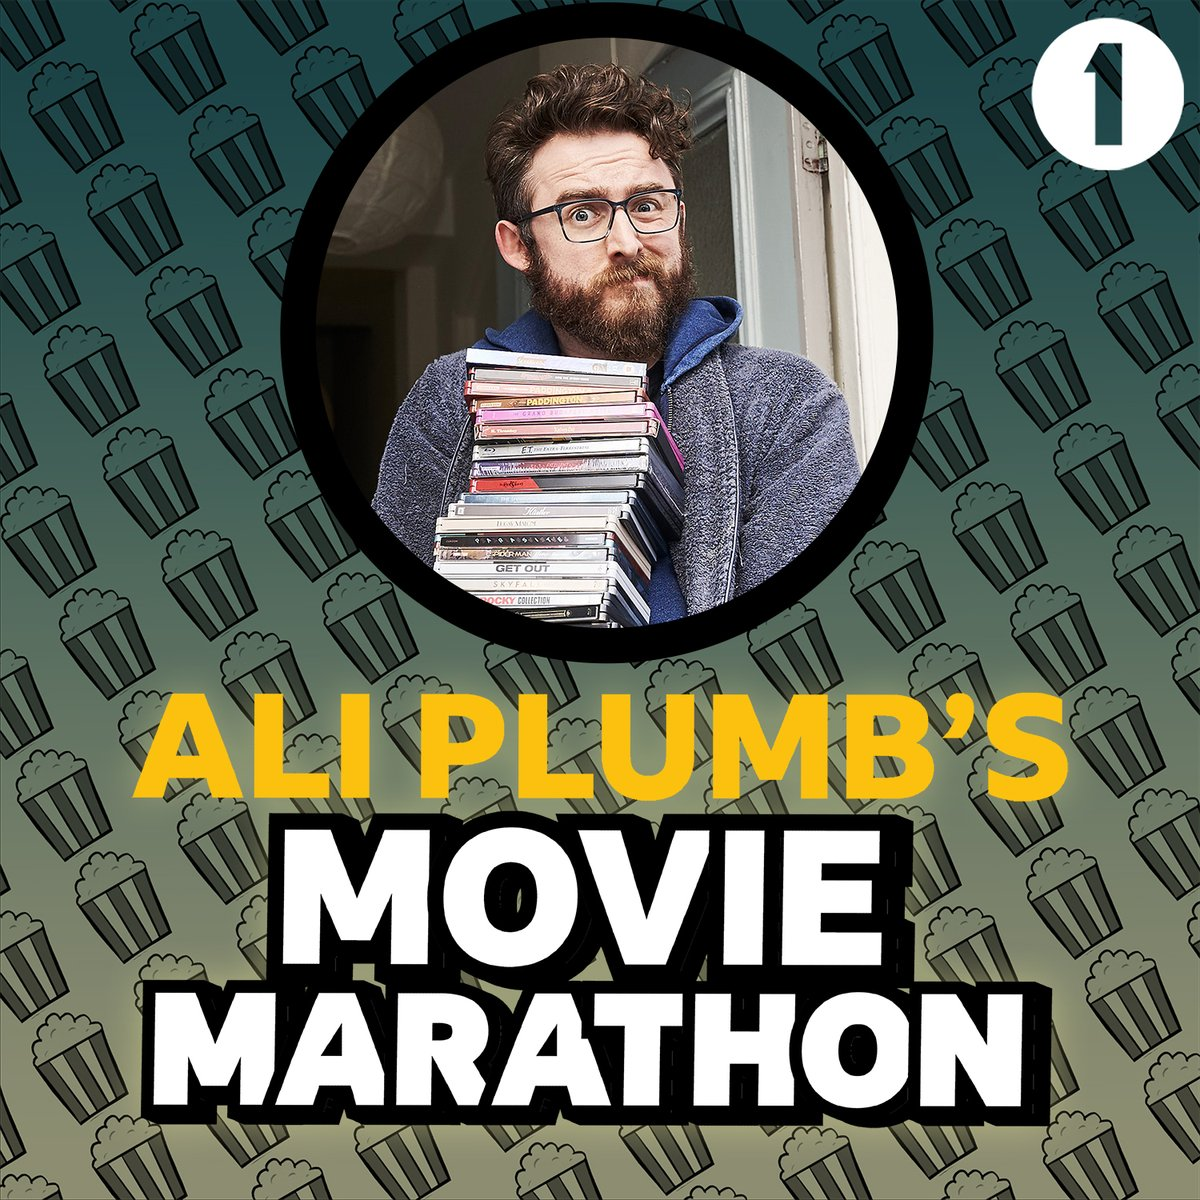 So it begins 🍿 Our resident film critic @AliPlumb is embarking on a Movie Marathon, watching a film for every letter of the alphabet, A-Z, as chosen by 𝙮𝙤𝙪! Listen to Radio 1 all week to hear how he's progressing, and how you can help choose what he ends up watching next 🎬